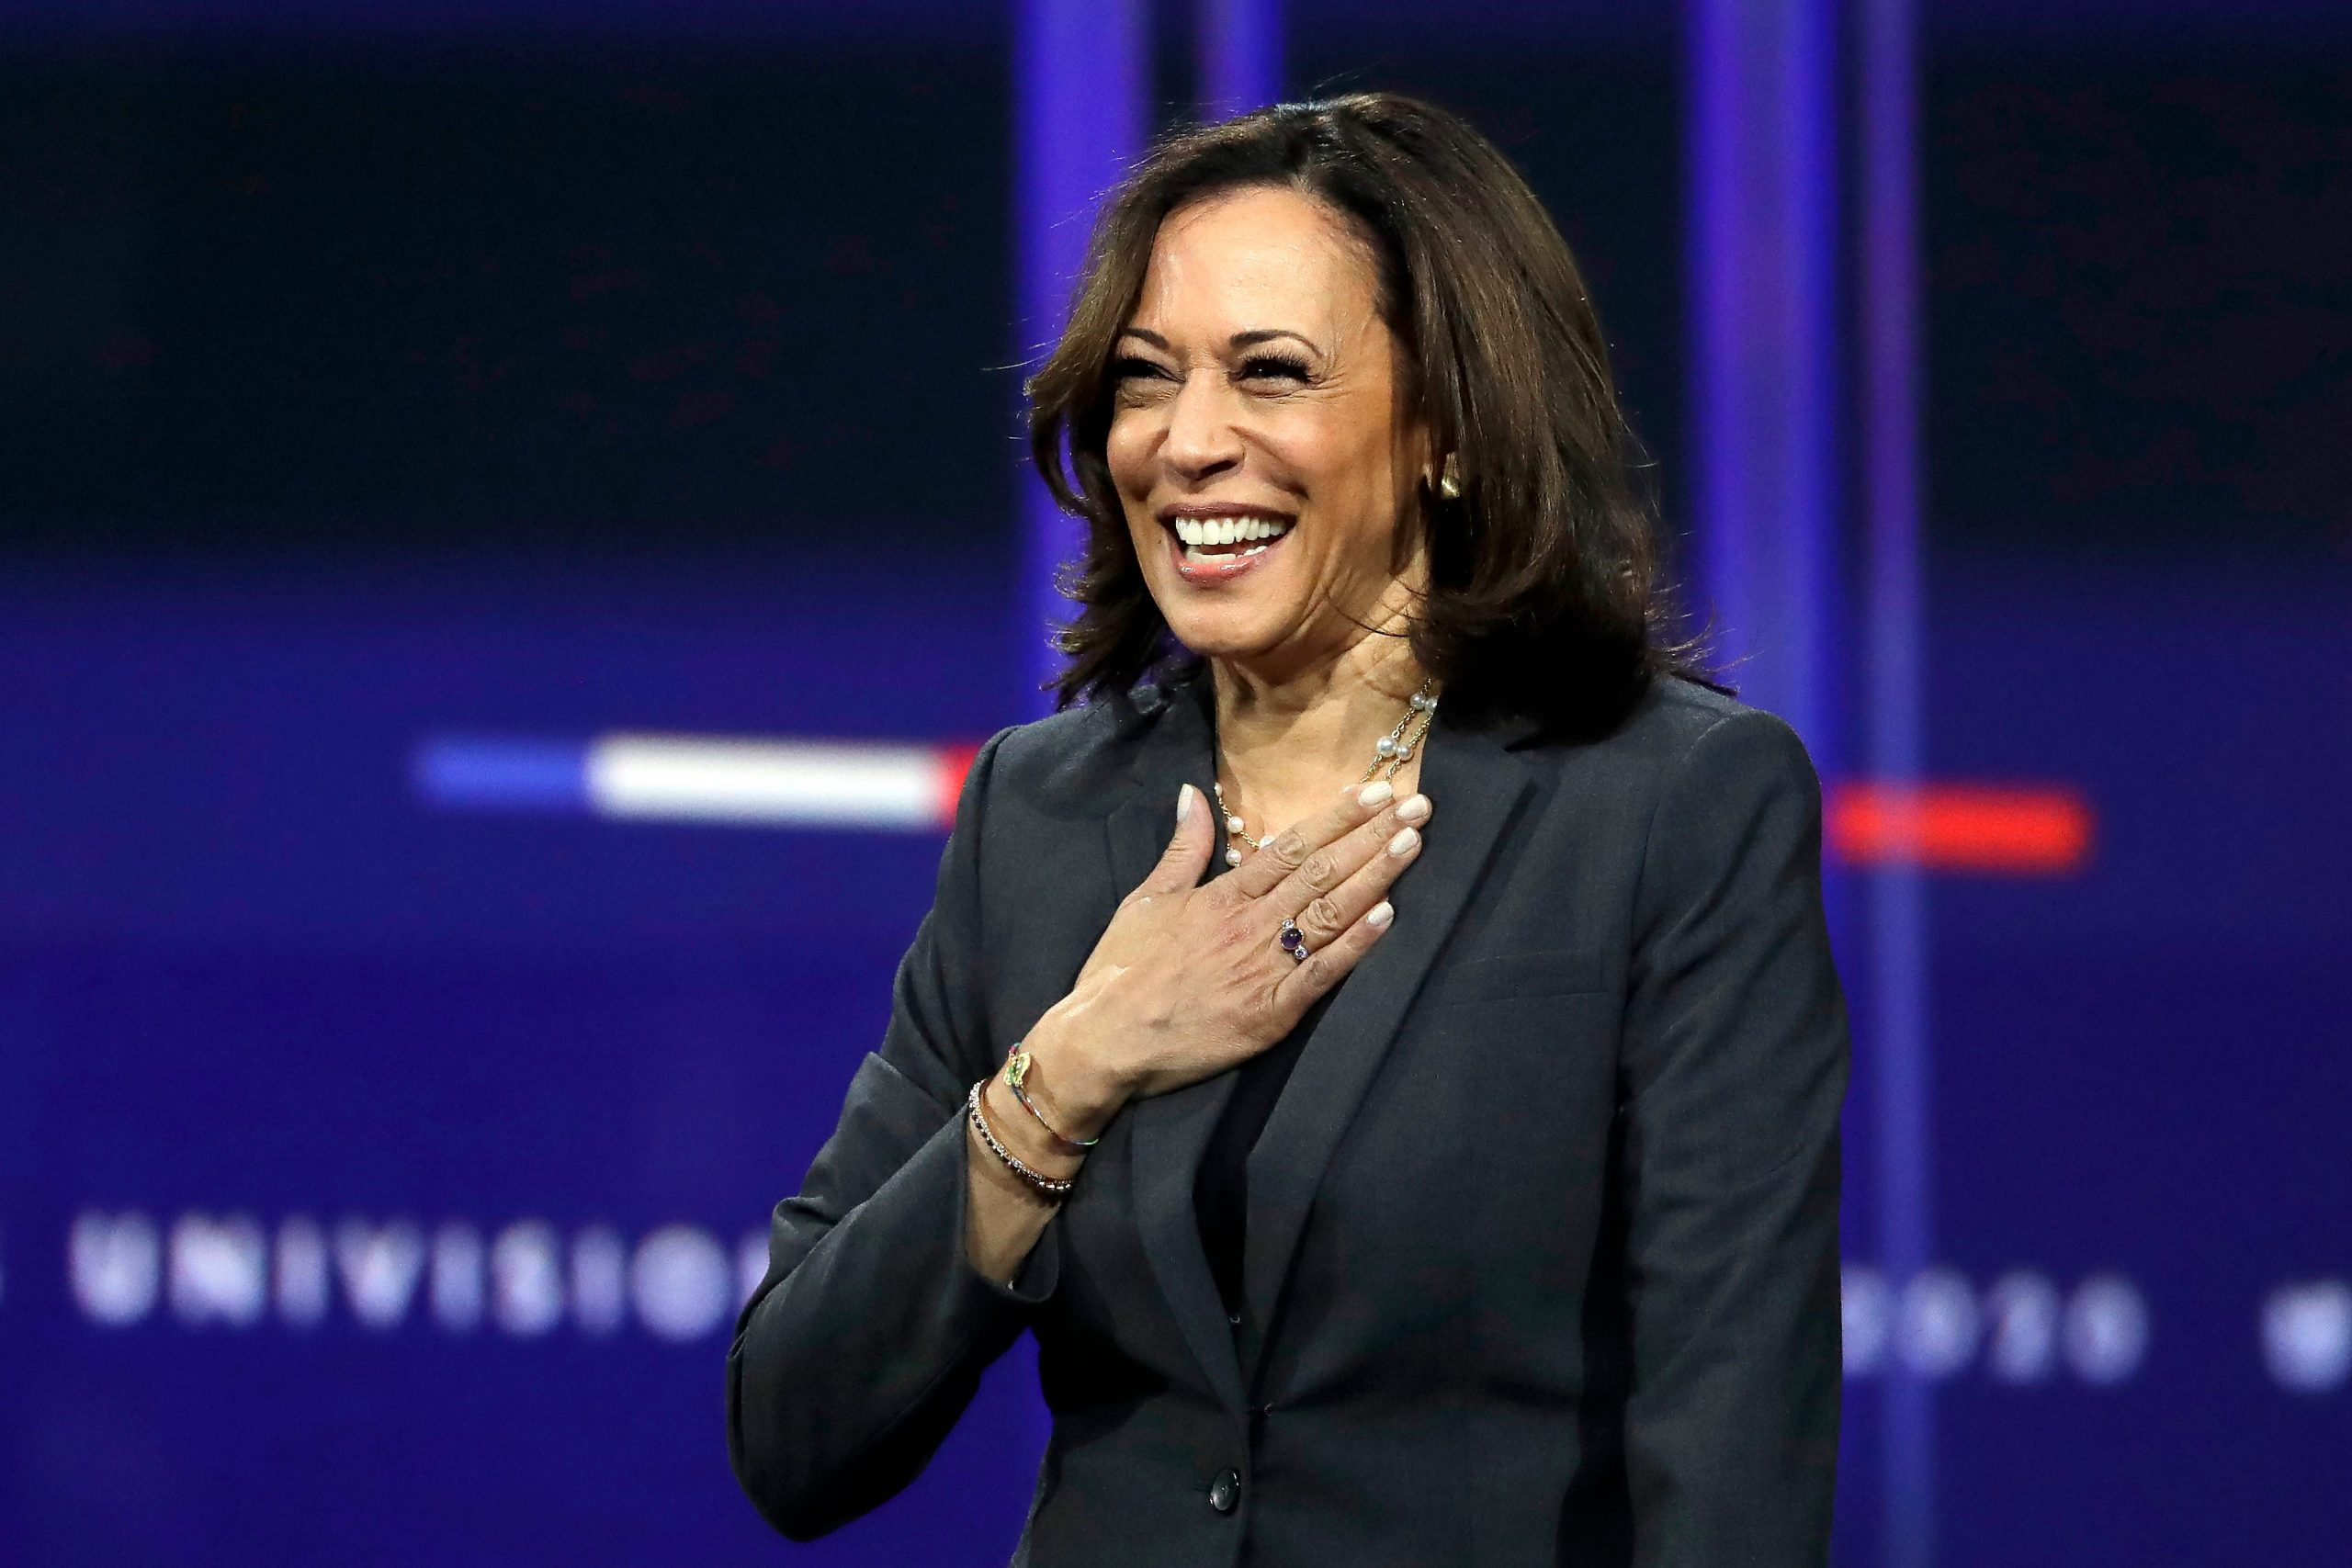 Indian-origin senator Kamala Harris named US Vice President candidate for Democratic party